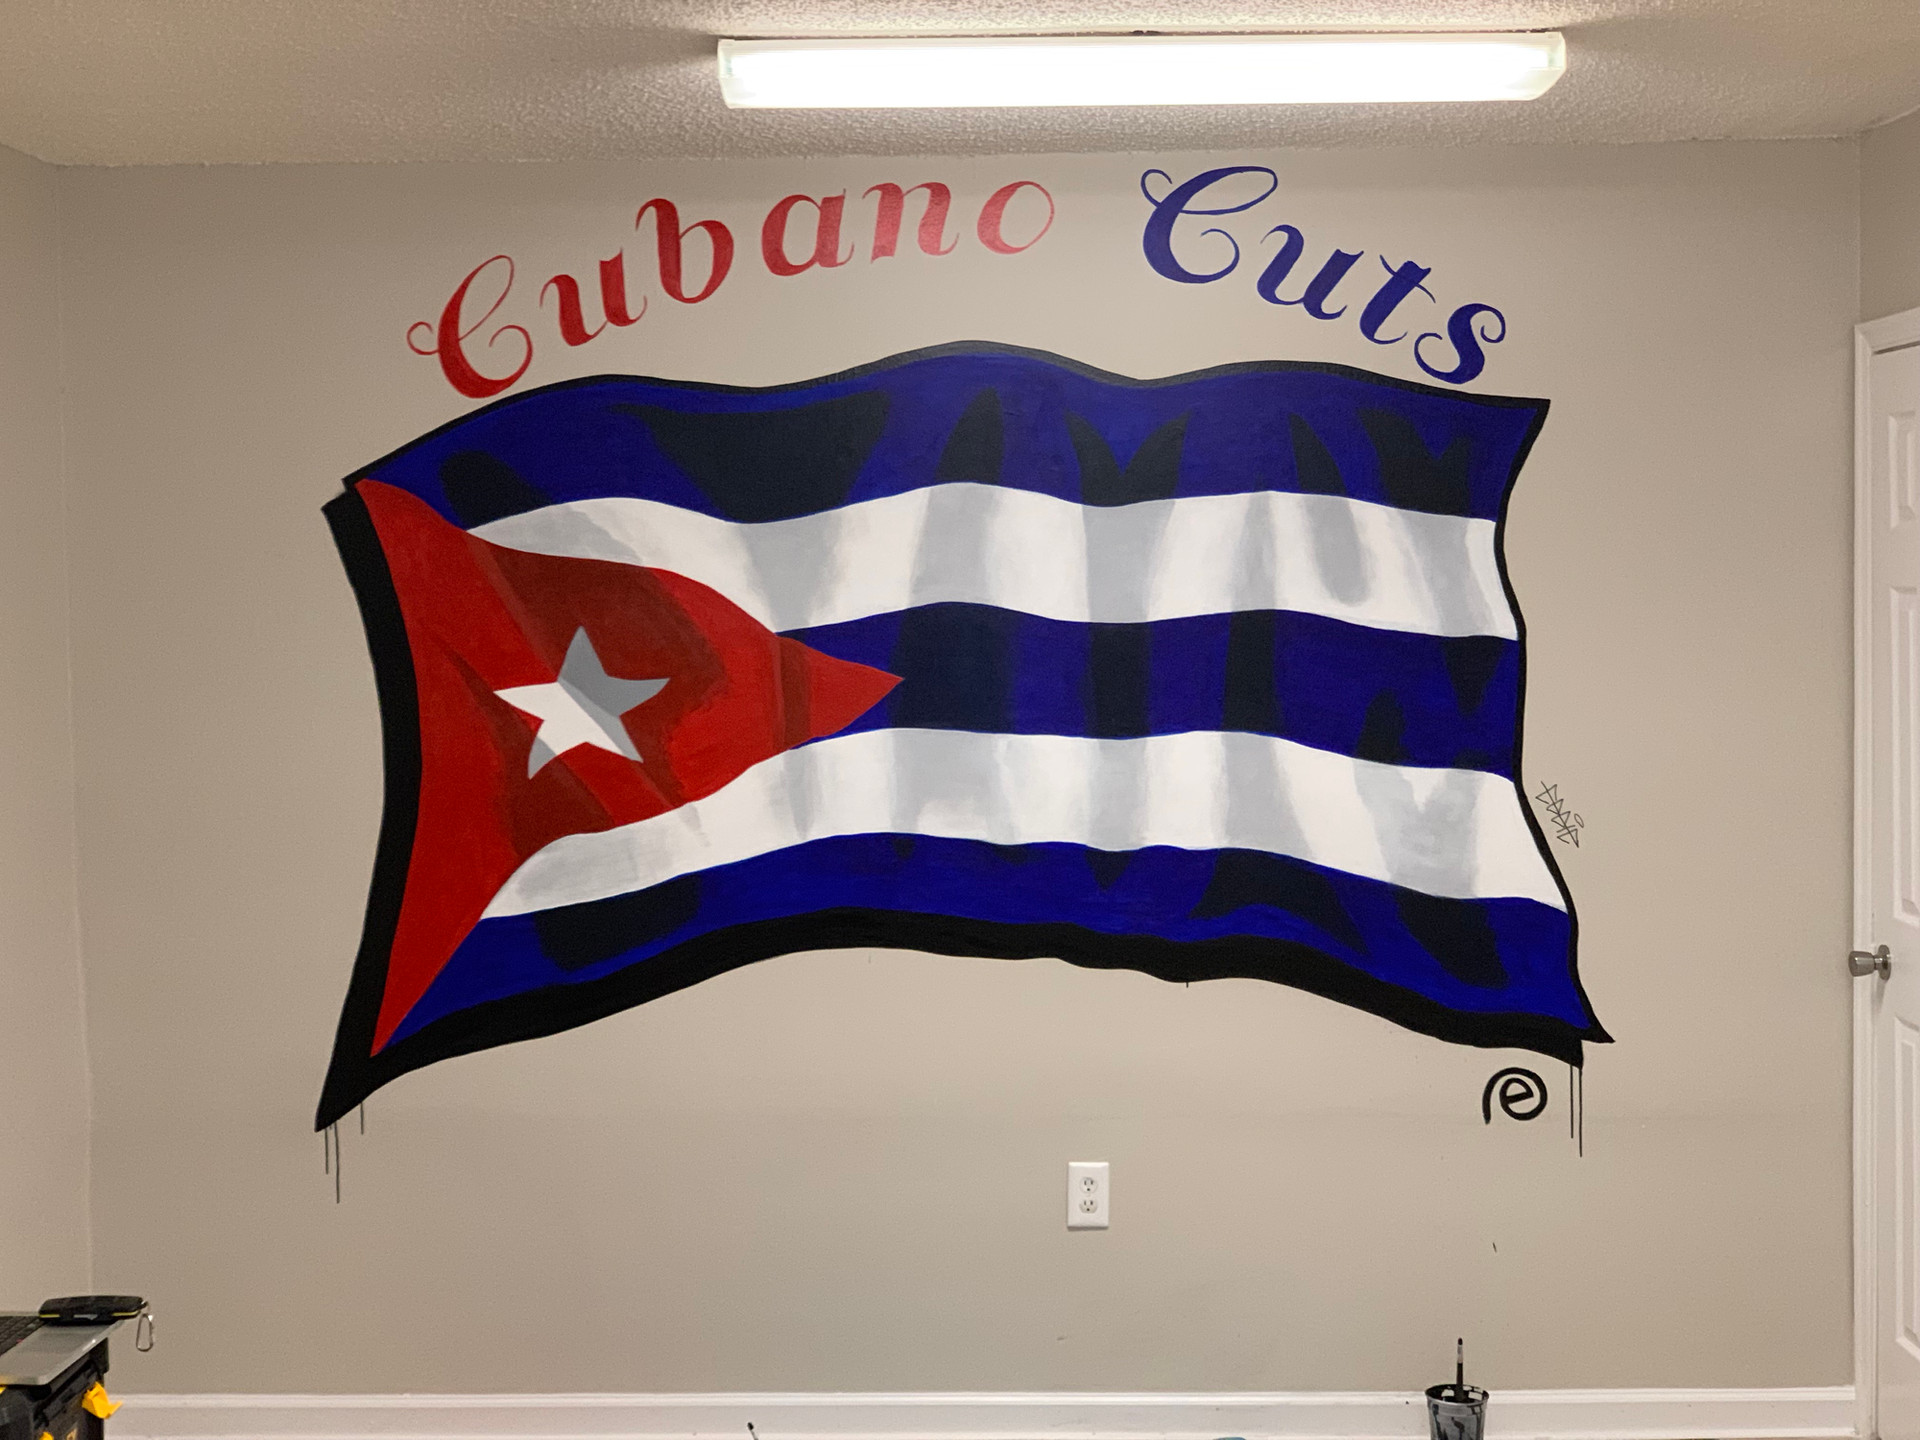 Cubano Cuts Barber Shop Mural